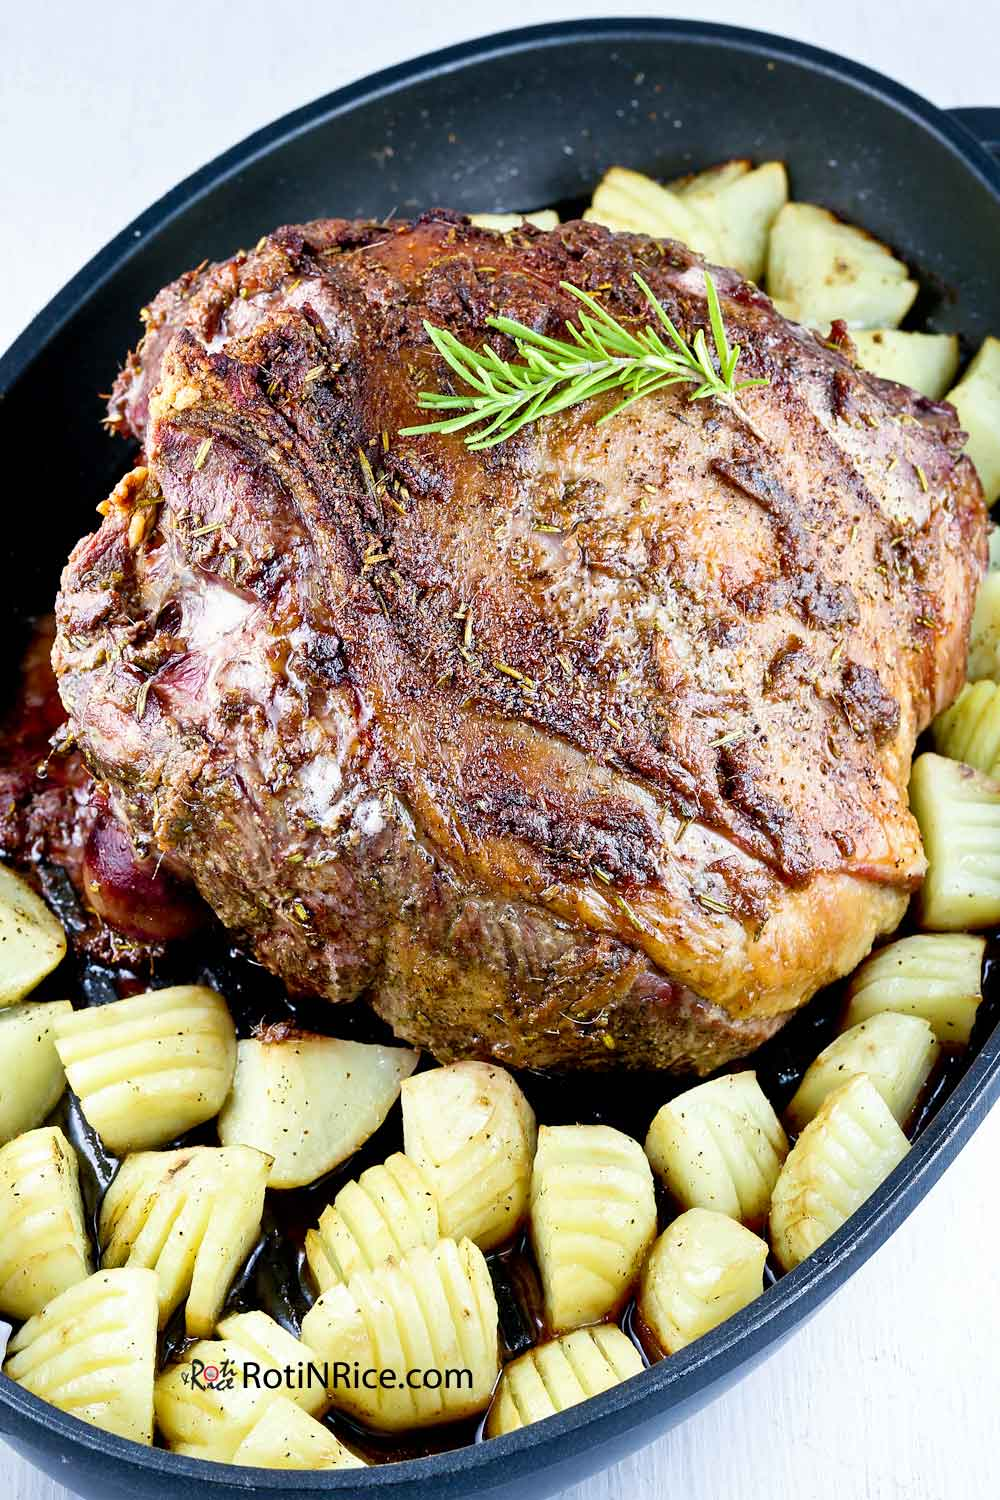 Roast Leg of Lamb fresh out of the oven.